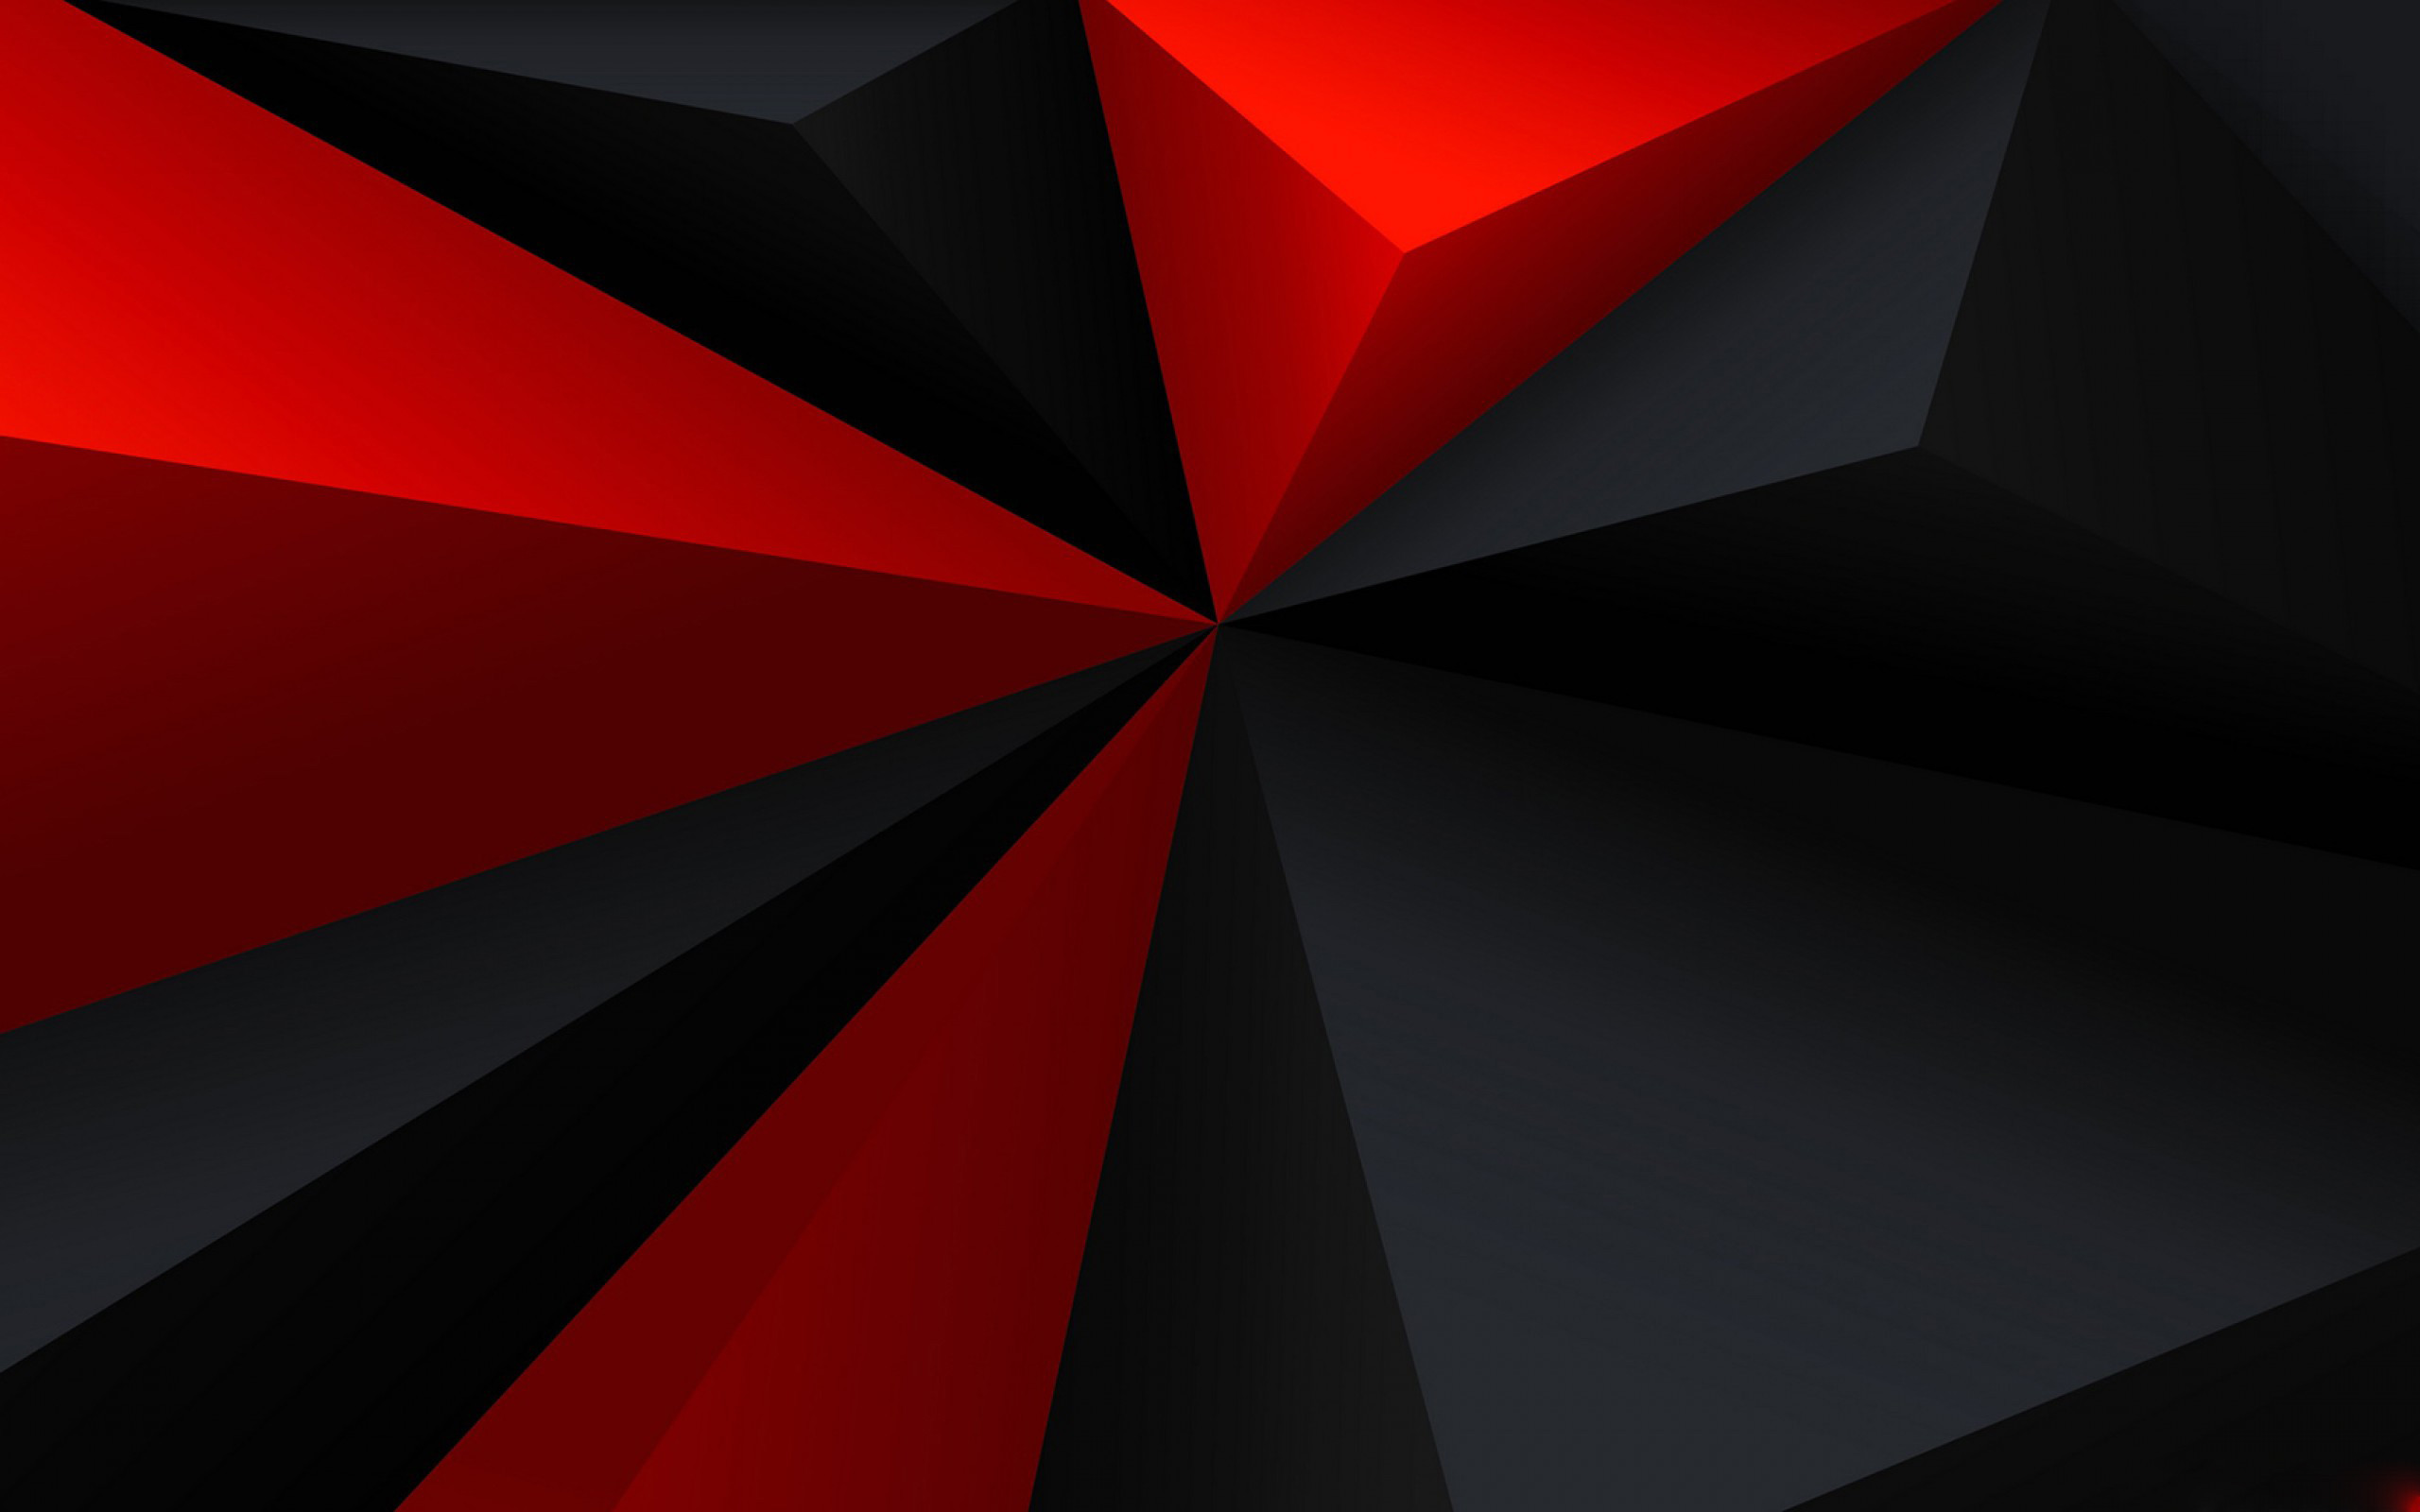 Red And Black 4k